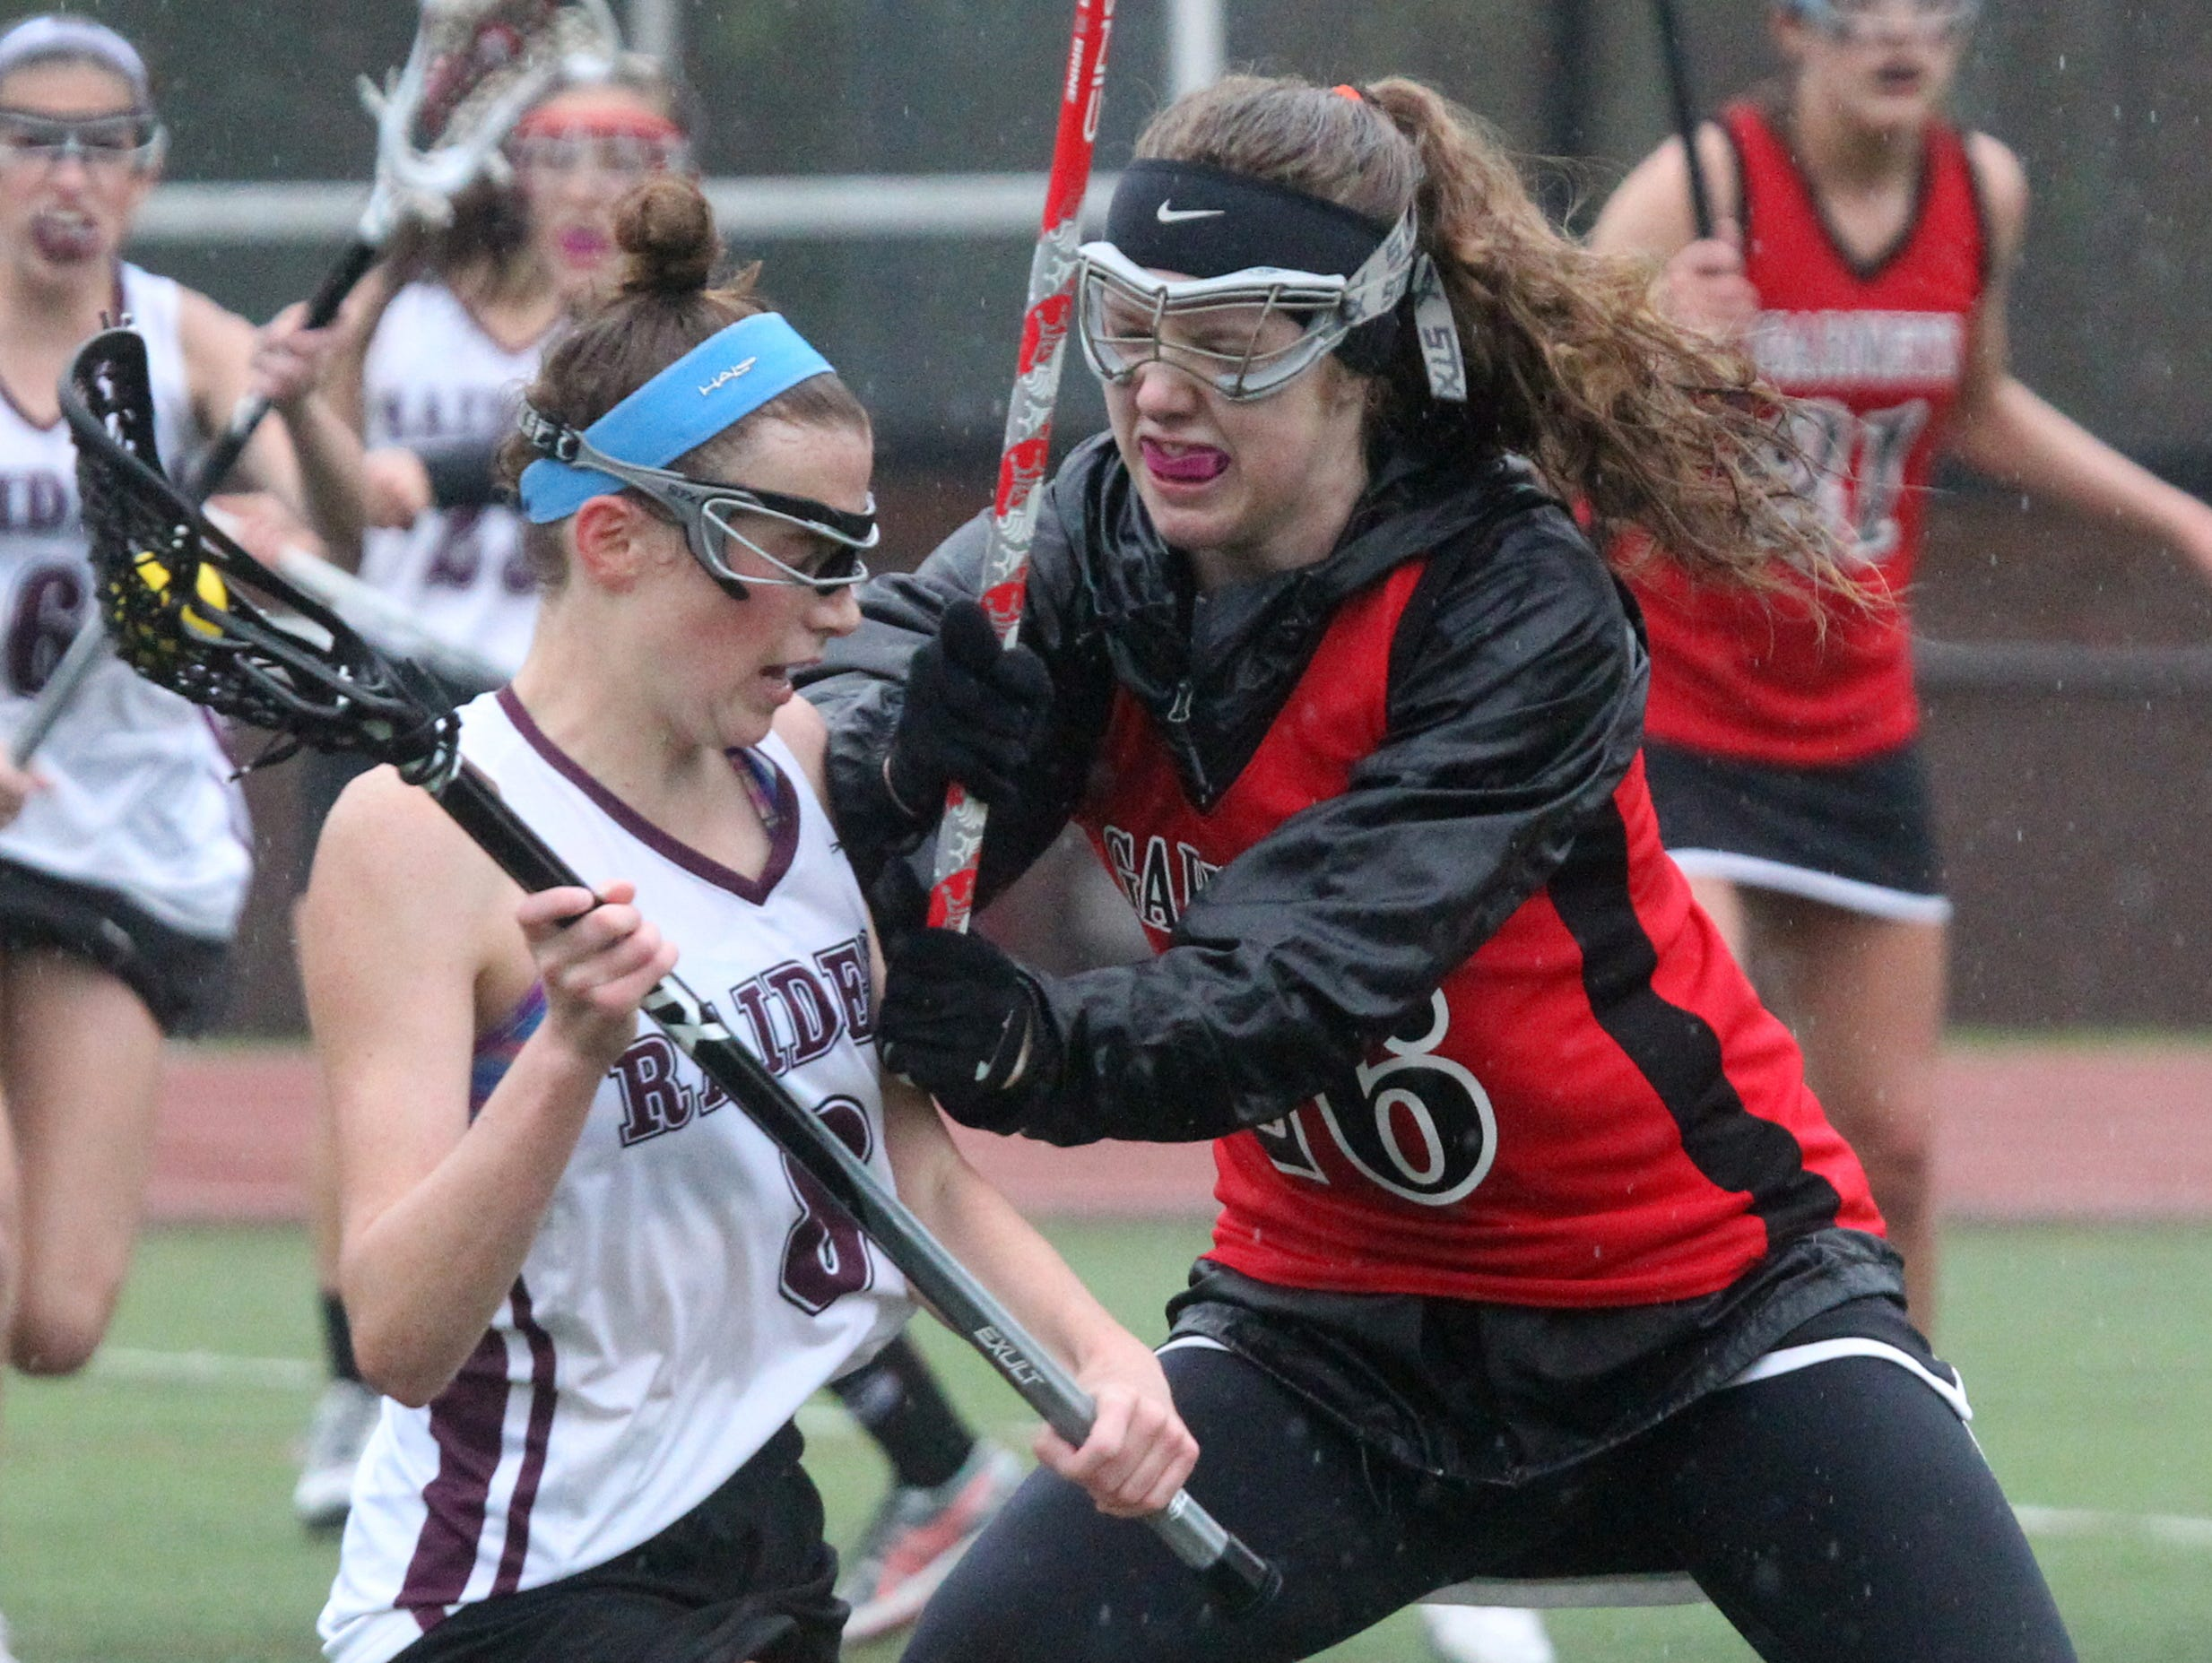 Rye's Caroline Neave pressures Scarsdale's Jilly Mehlman during their game at Scarsdale May 13, 2016.